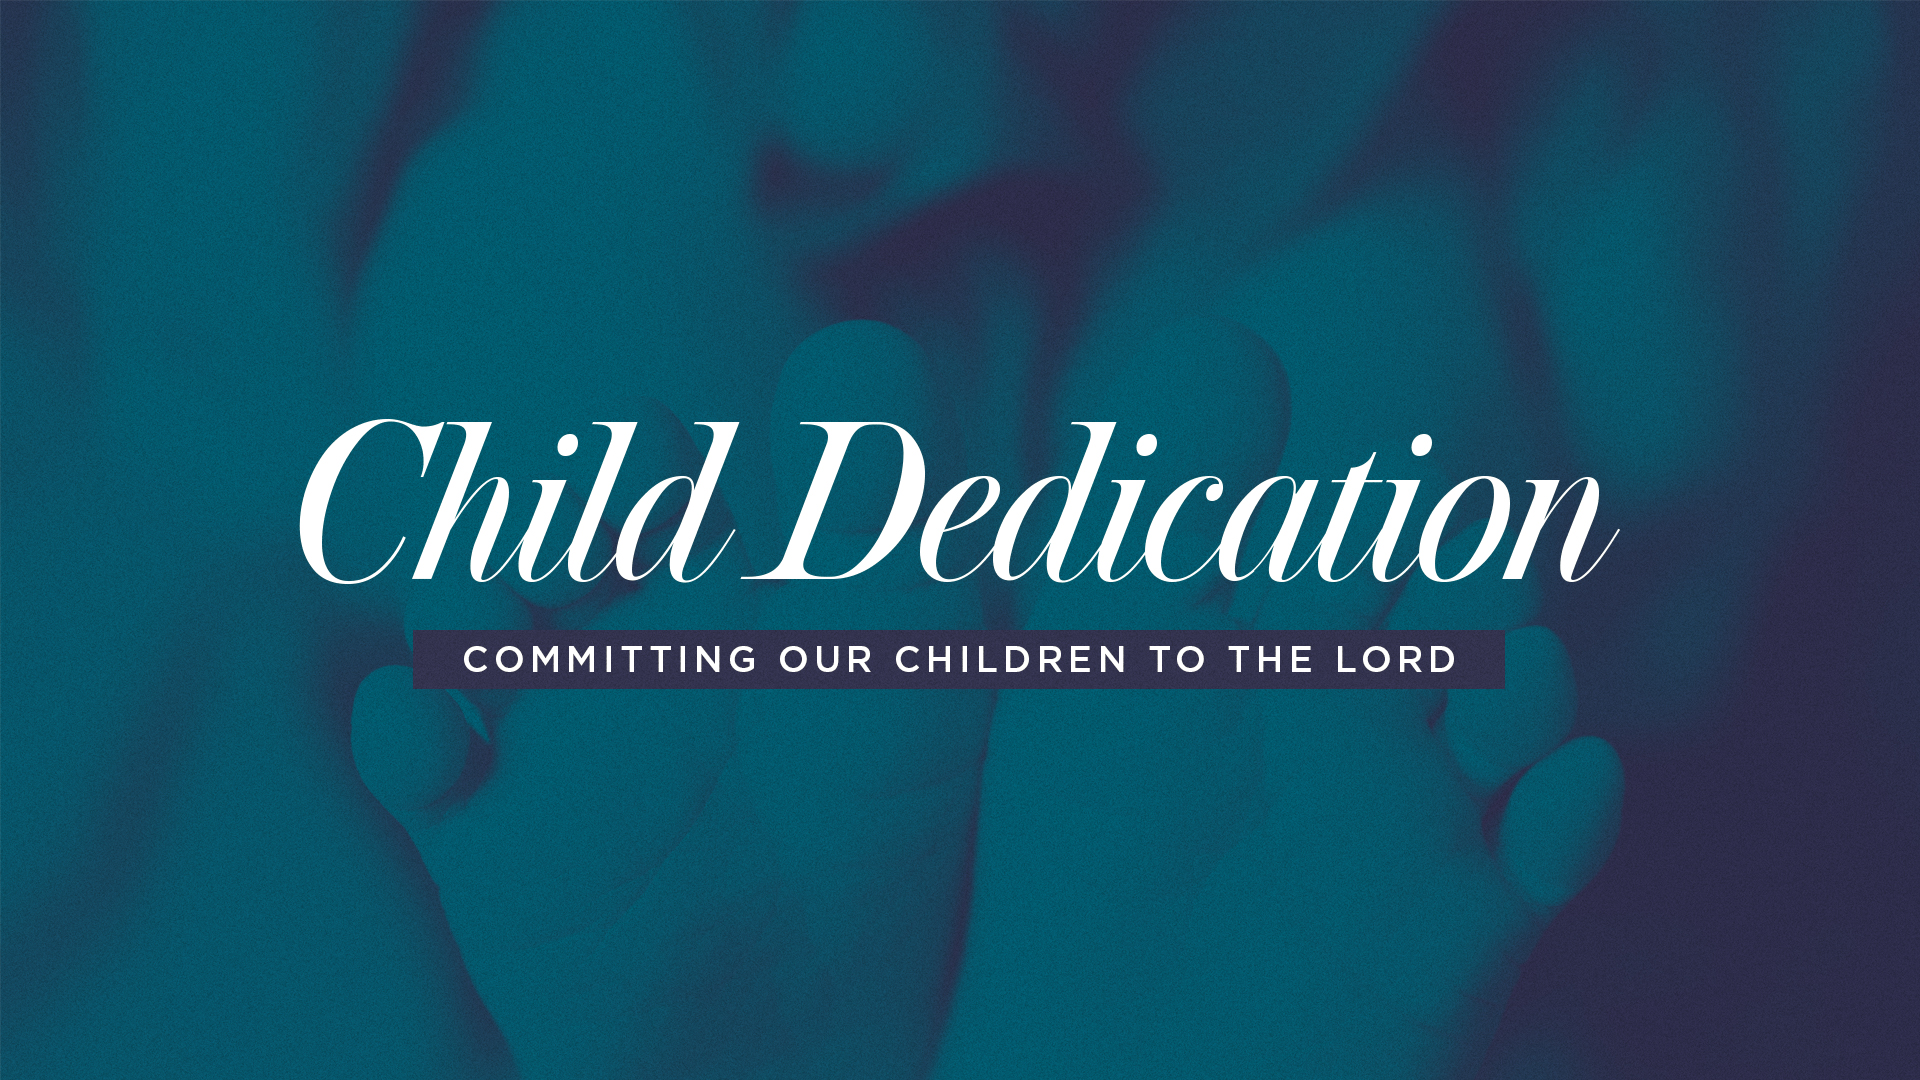 Child Dedication 2019